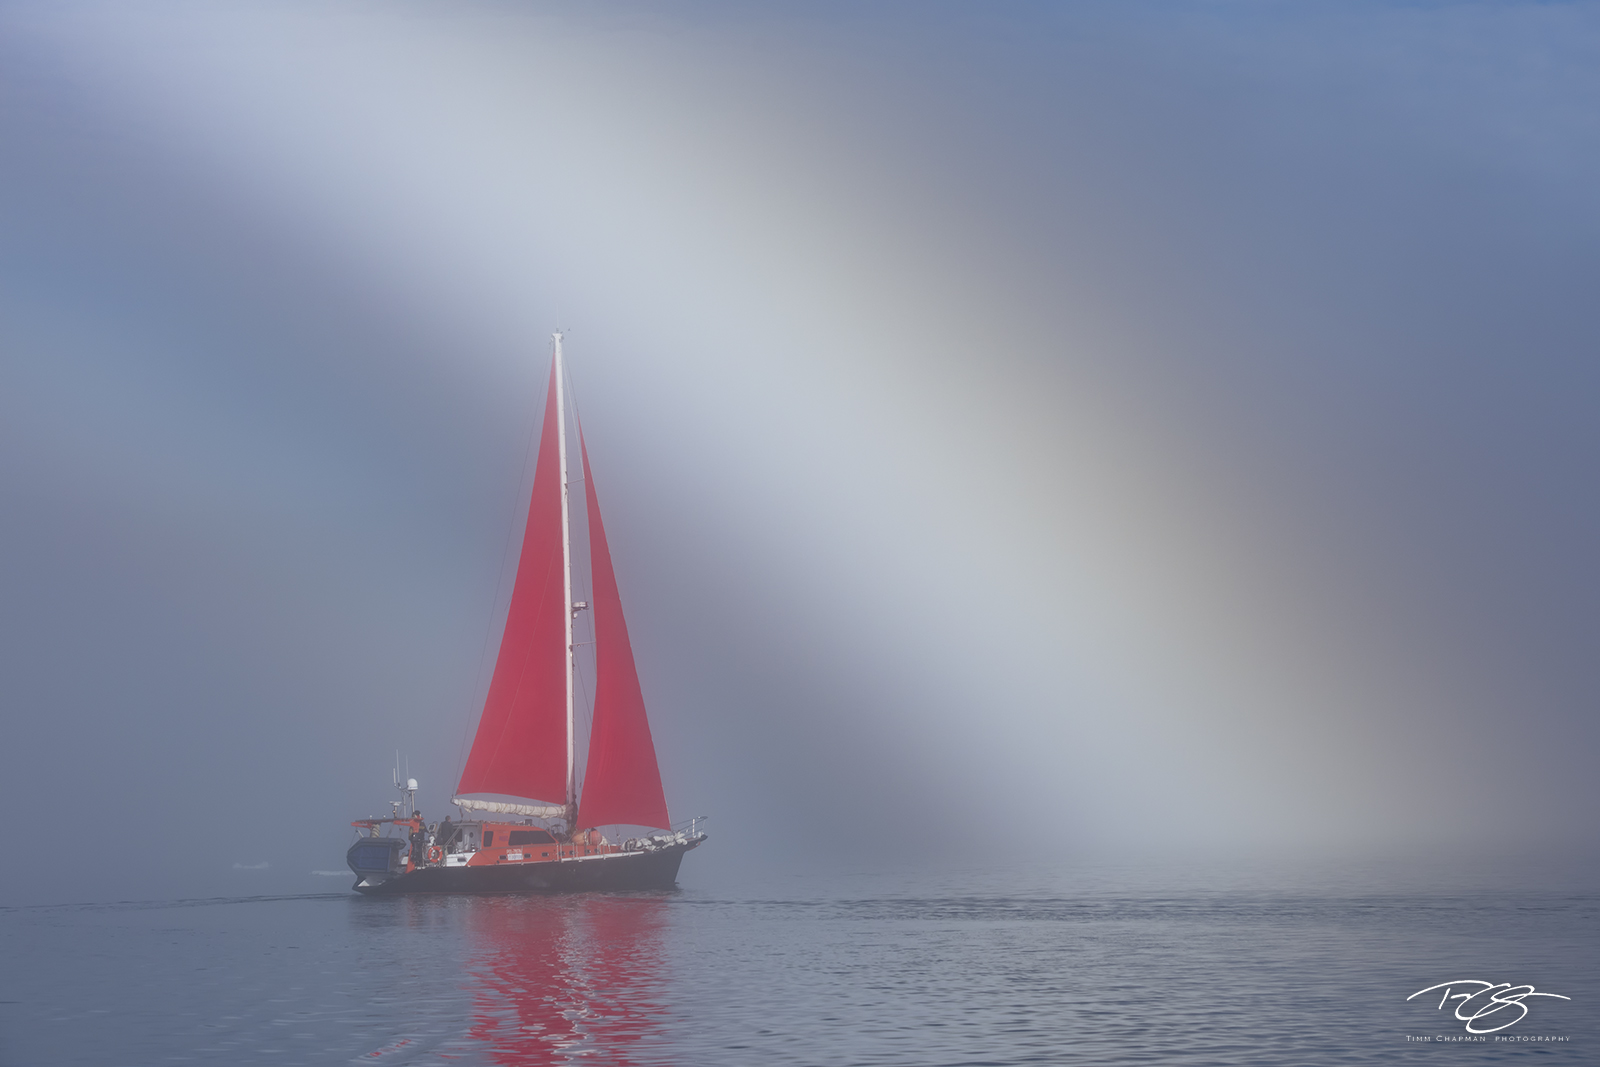 fog; foggy; mist; dreamy; disko bay; sailboat; sailing; red sails; schooner; sails; rainbow; fogbow; reflection; scarlet sails, photo